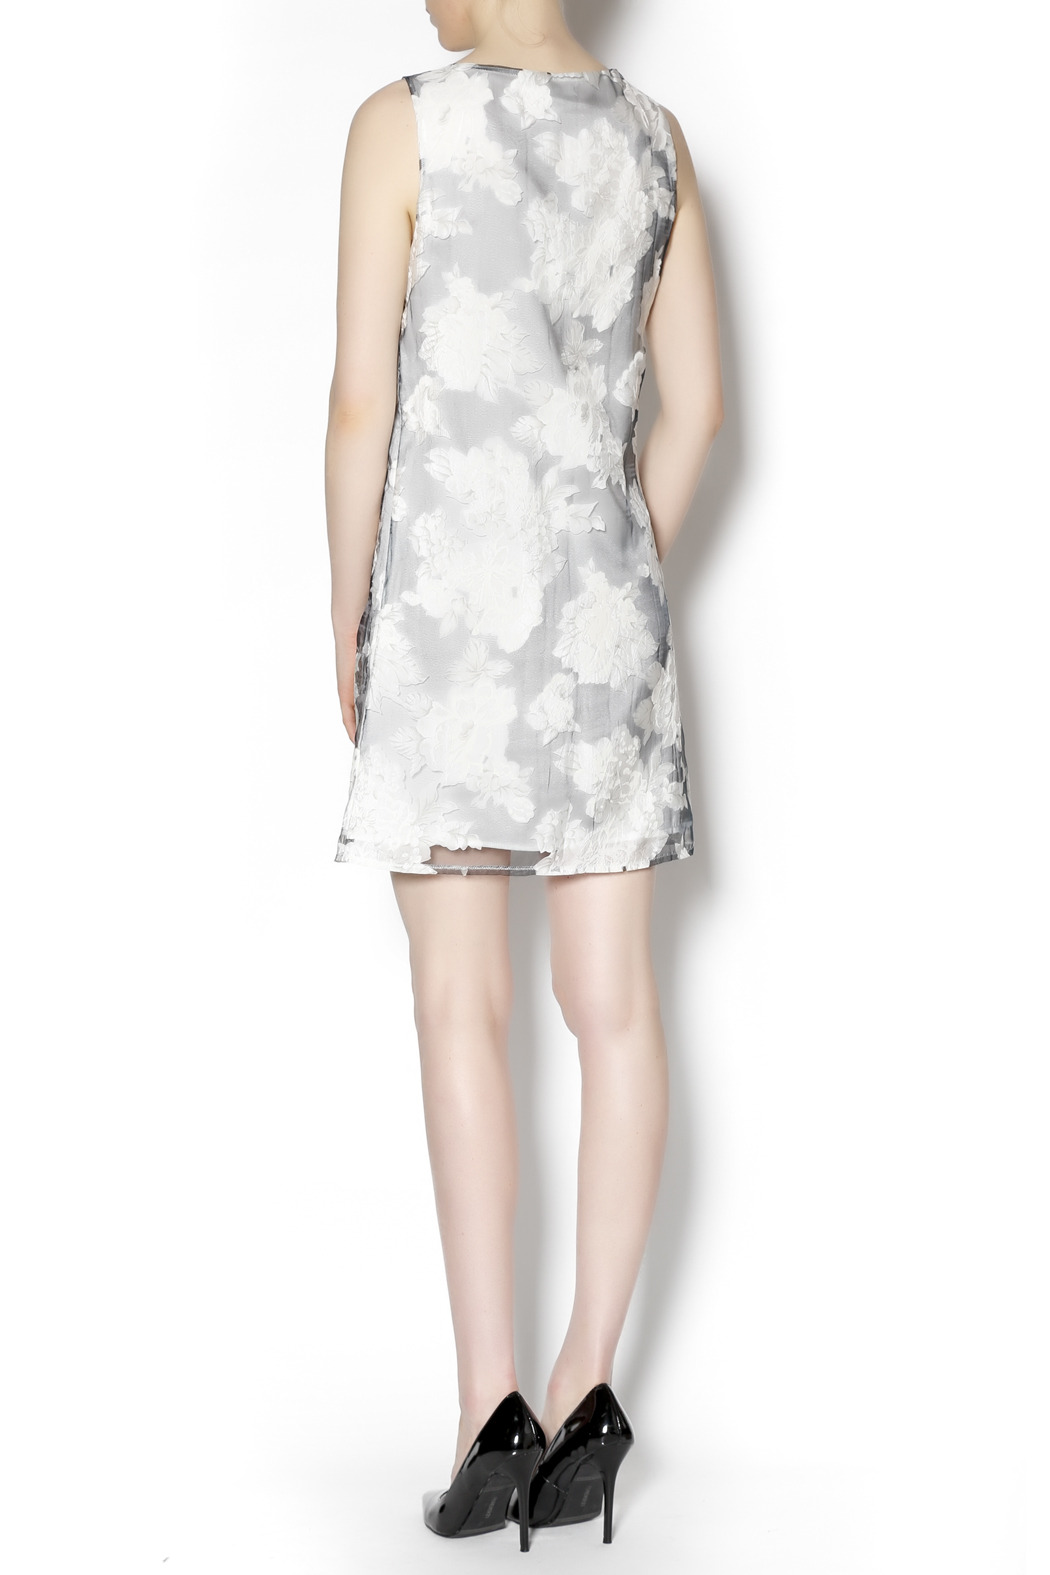 Lucy & Co. sleeveless white dress - Side Cropped Image